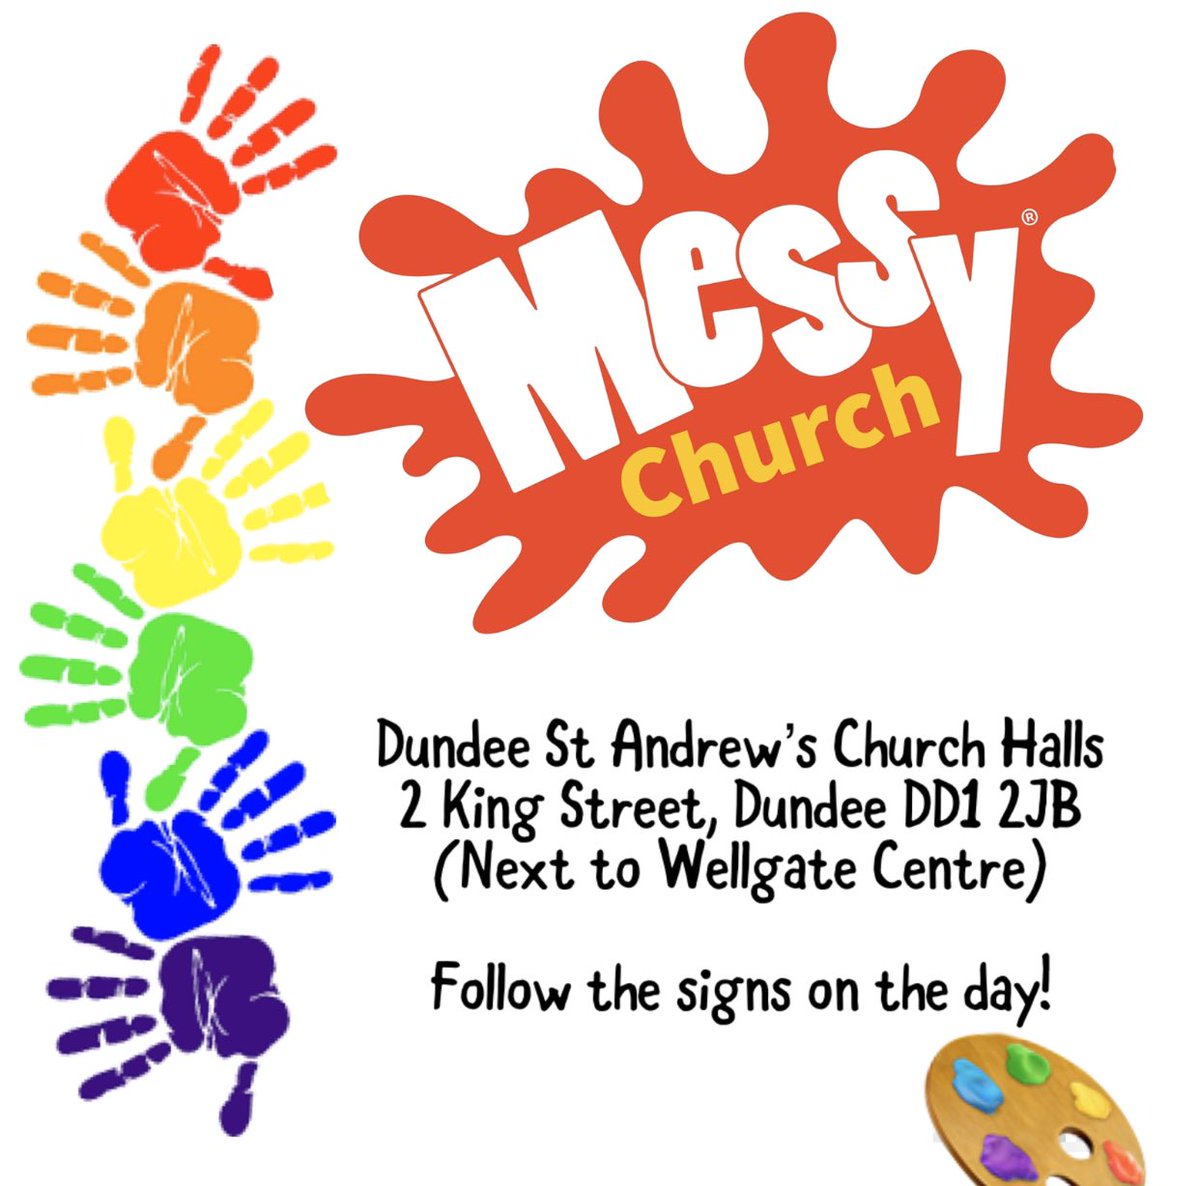 Join us tomorrow, Saturday 18th January, for our Jonah and the Whale themed Messy Church - we've lots of fun crafts, songs and stories. Lunch is included so do join us at 11am! #messychurch @msp_standrews @MessyChurchBRF